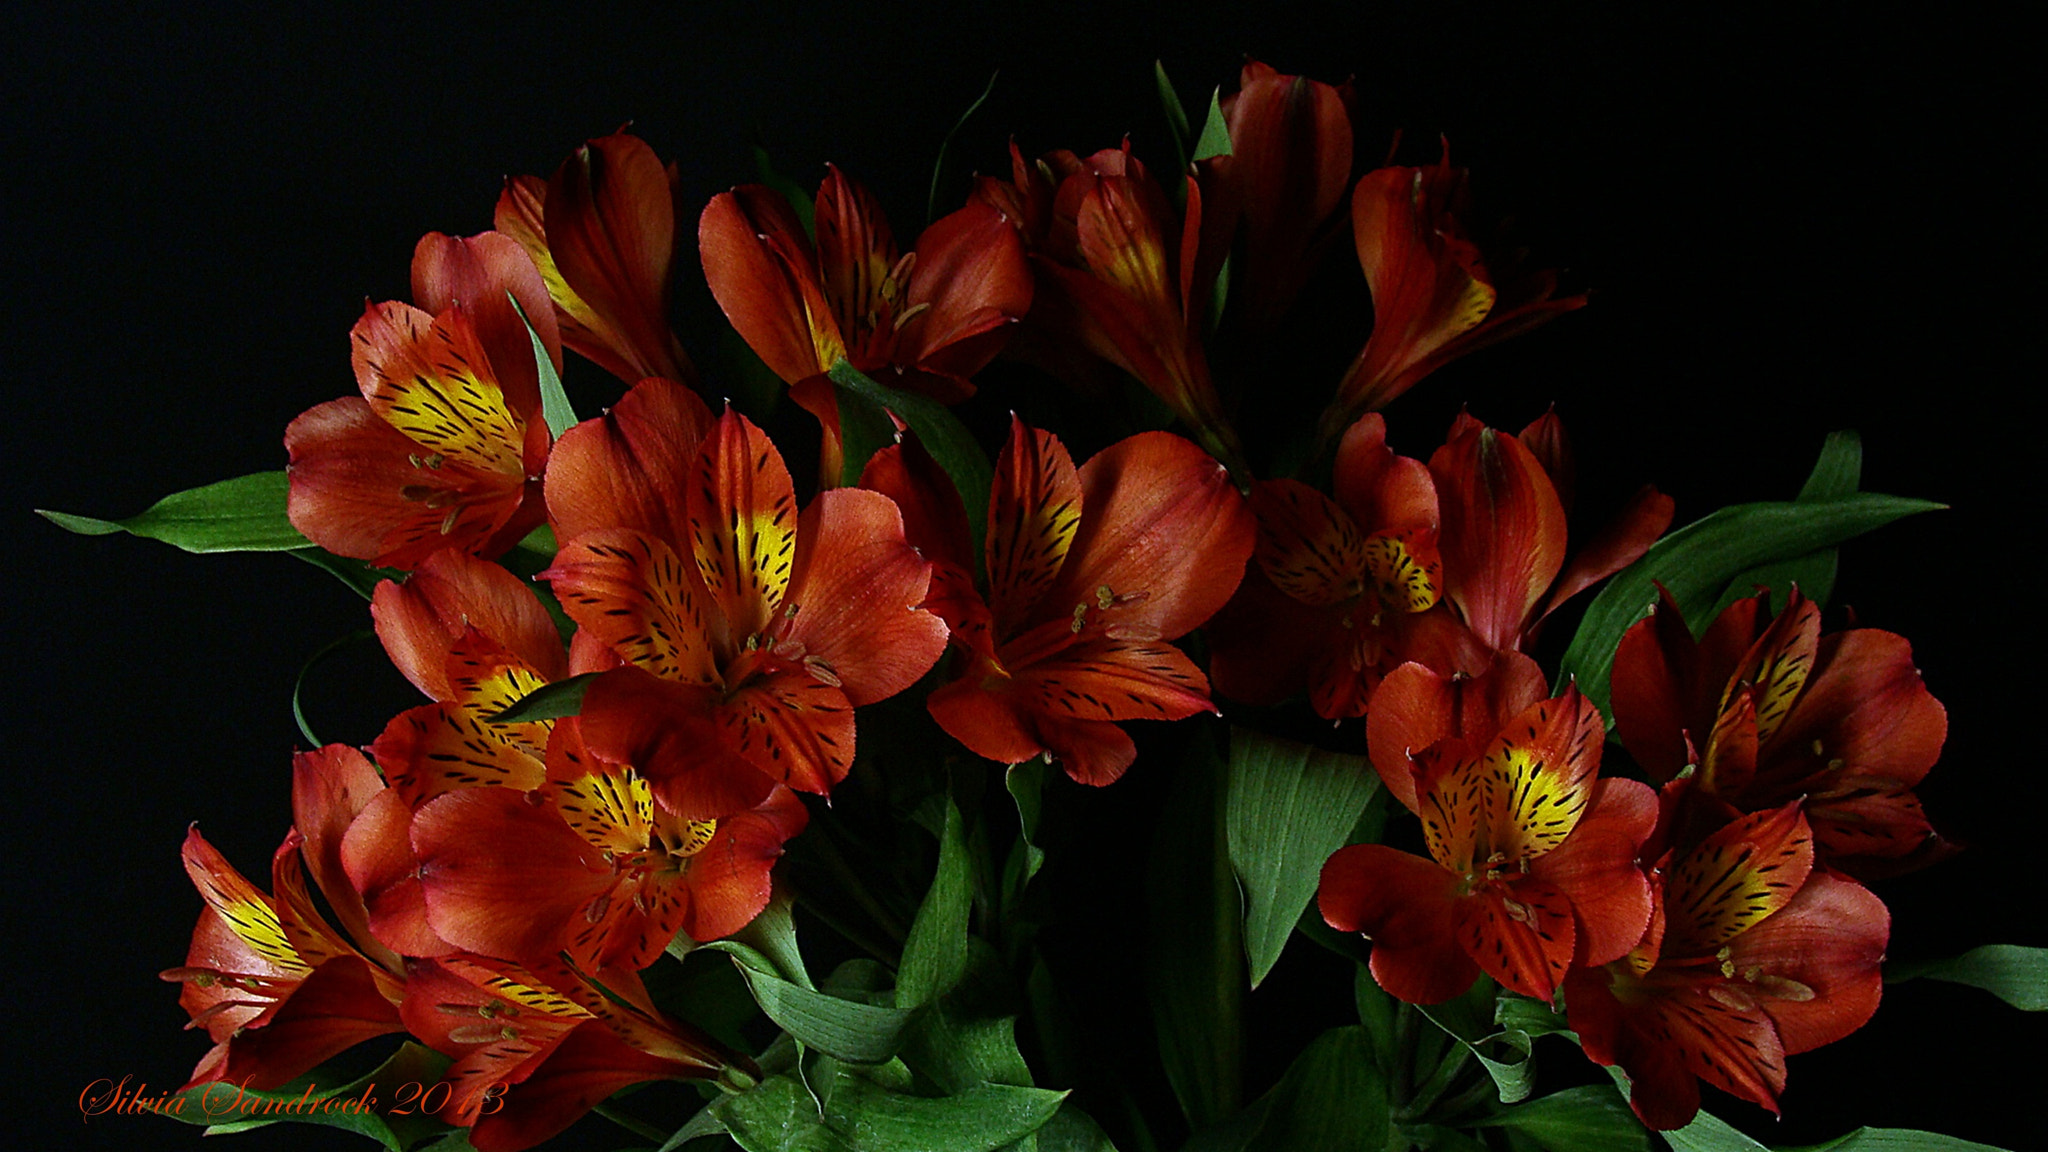 Photograph A Bouquet of Peruvian Lilies......... by Silvia Sandrock on 500px